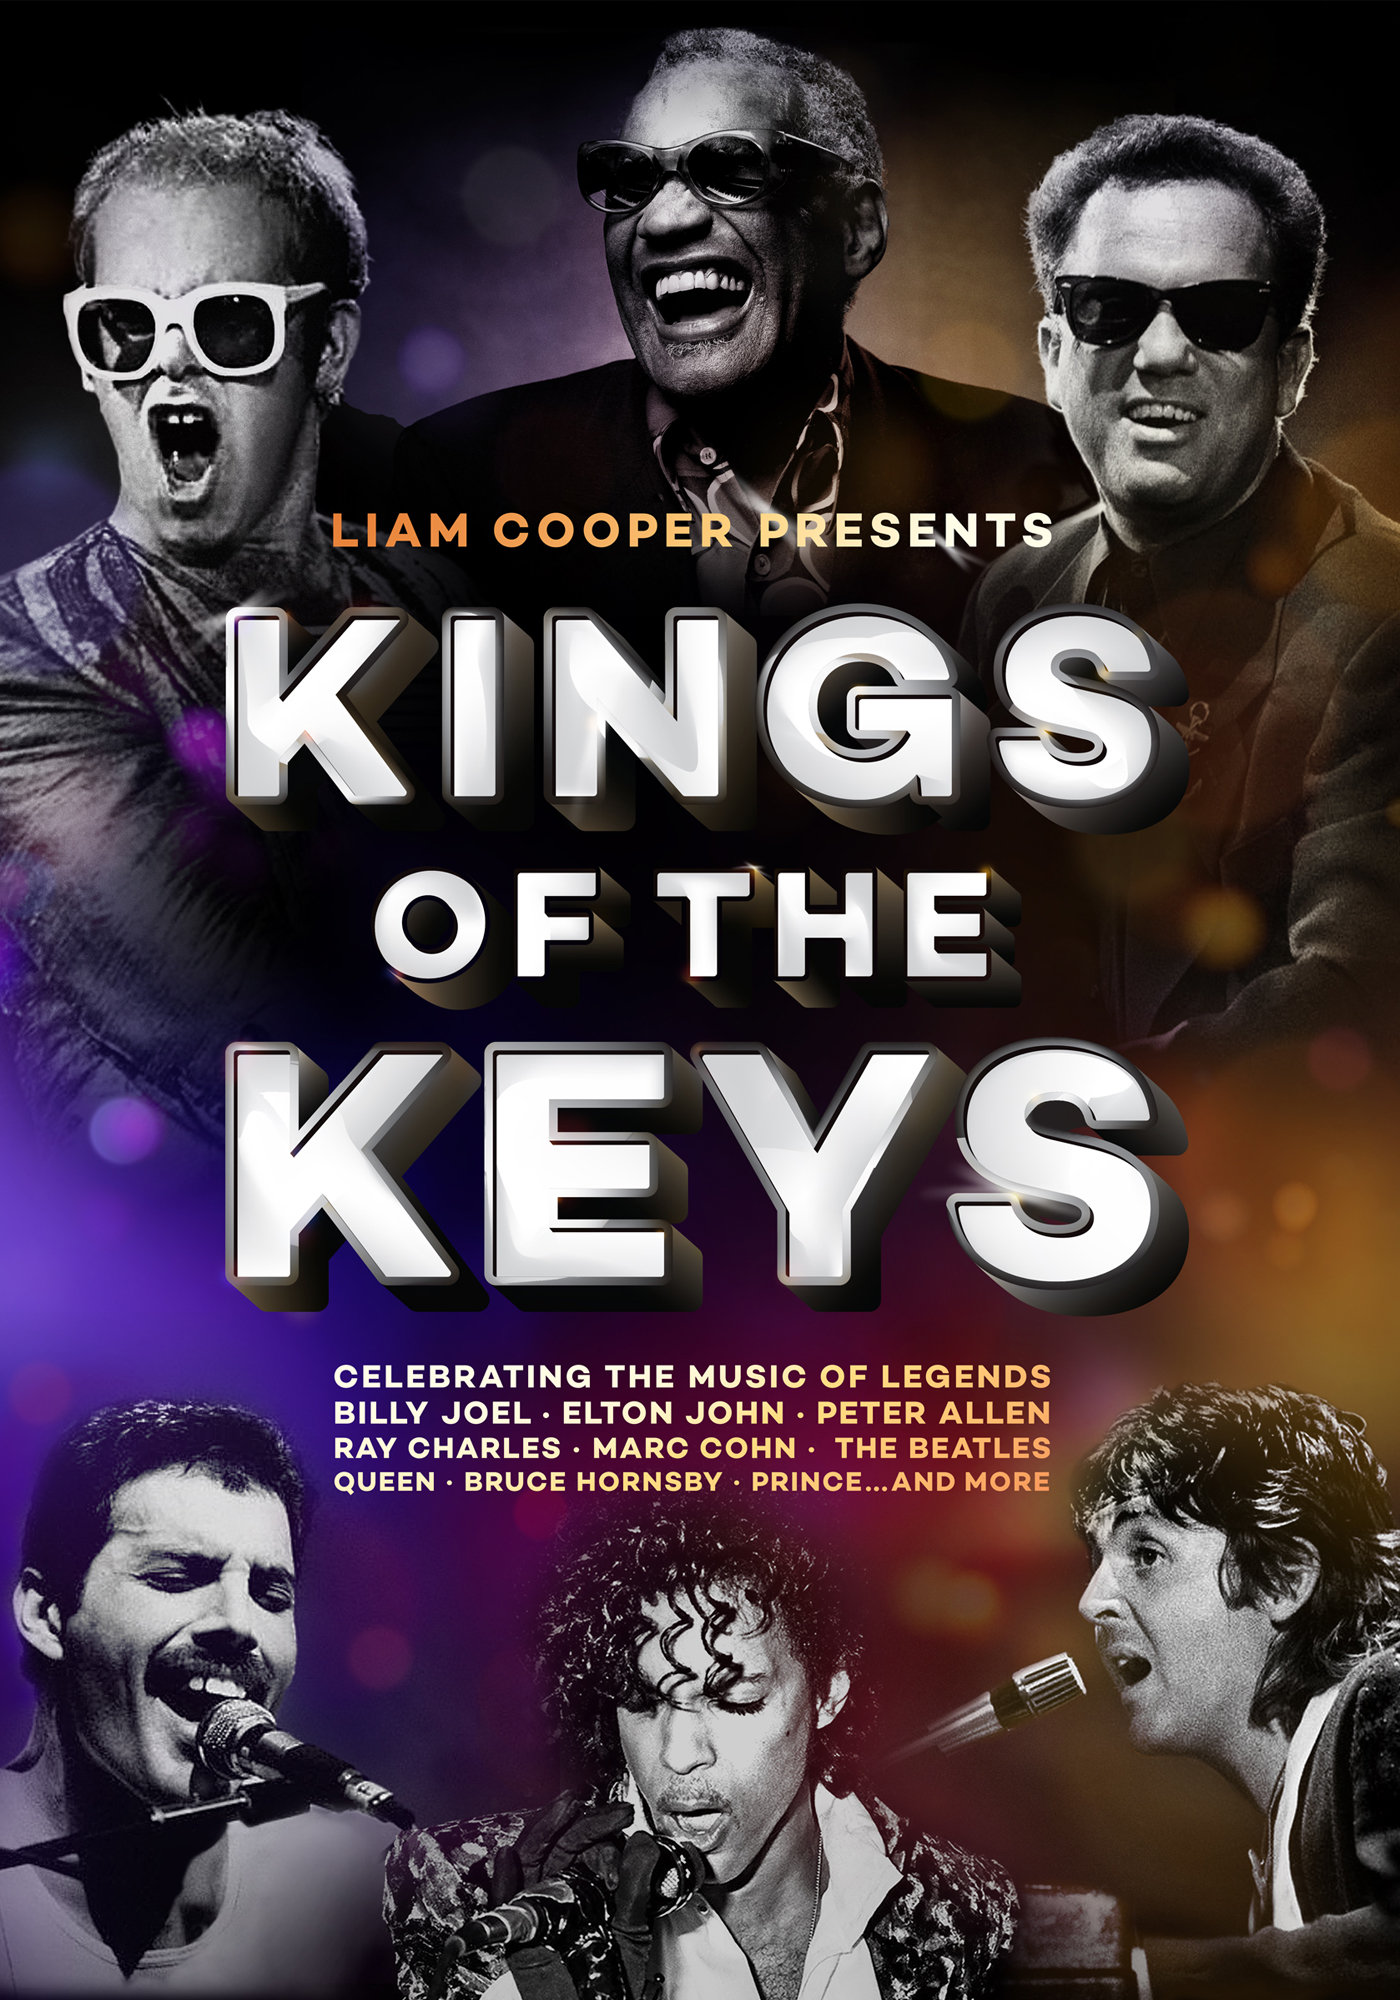 Kings of the Keys - Billy Joel, Elton John, Peter Allen, Ray Charles… these are the Kings of the Keys. Join Liam and his 6-piece band for a jam-packed tribute to more than 15 artists whose piano-driven hits have made them undeniable Kings of the Keys.  Following a sell-out premiere in 2018, Kings of the Keys is bringing the celebration of piano rock and roll royalty to stages across Sydney and regional NSW in February 2020.Sharing the meaning and inspiration behind your favourite songs, Liam will take you back to the very first time you ever heard Piano Man, Bohemian Rhapsody, Let It Be, Walking In Memphis, Rocket Man and so many more iconic piano-pop hits.Audiences can't get enough of his vibrant energy and incredible stories.From 50s rock and roll legends Little Richard and Jerry Lee Lewis, to 80s synth-pop anthems Jump and Final Countdown, and everything in between - not to mention Billy and Elton's back-catalogue of hits from the 70s and beyond - Kings of the Keys celebrates the timeless music of four incredible decades.If you're yet to experience a Liam Cooper show, don't miss Kings of the Keys. Backed by a killer live band of drums, bass, guitar and trio of horns, you've never seen such a thrilling piano-man performance.